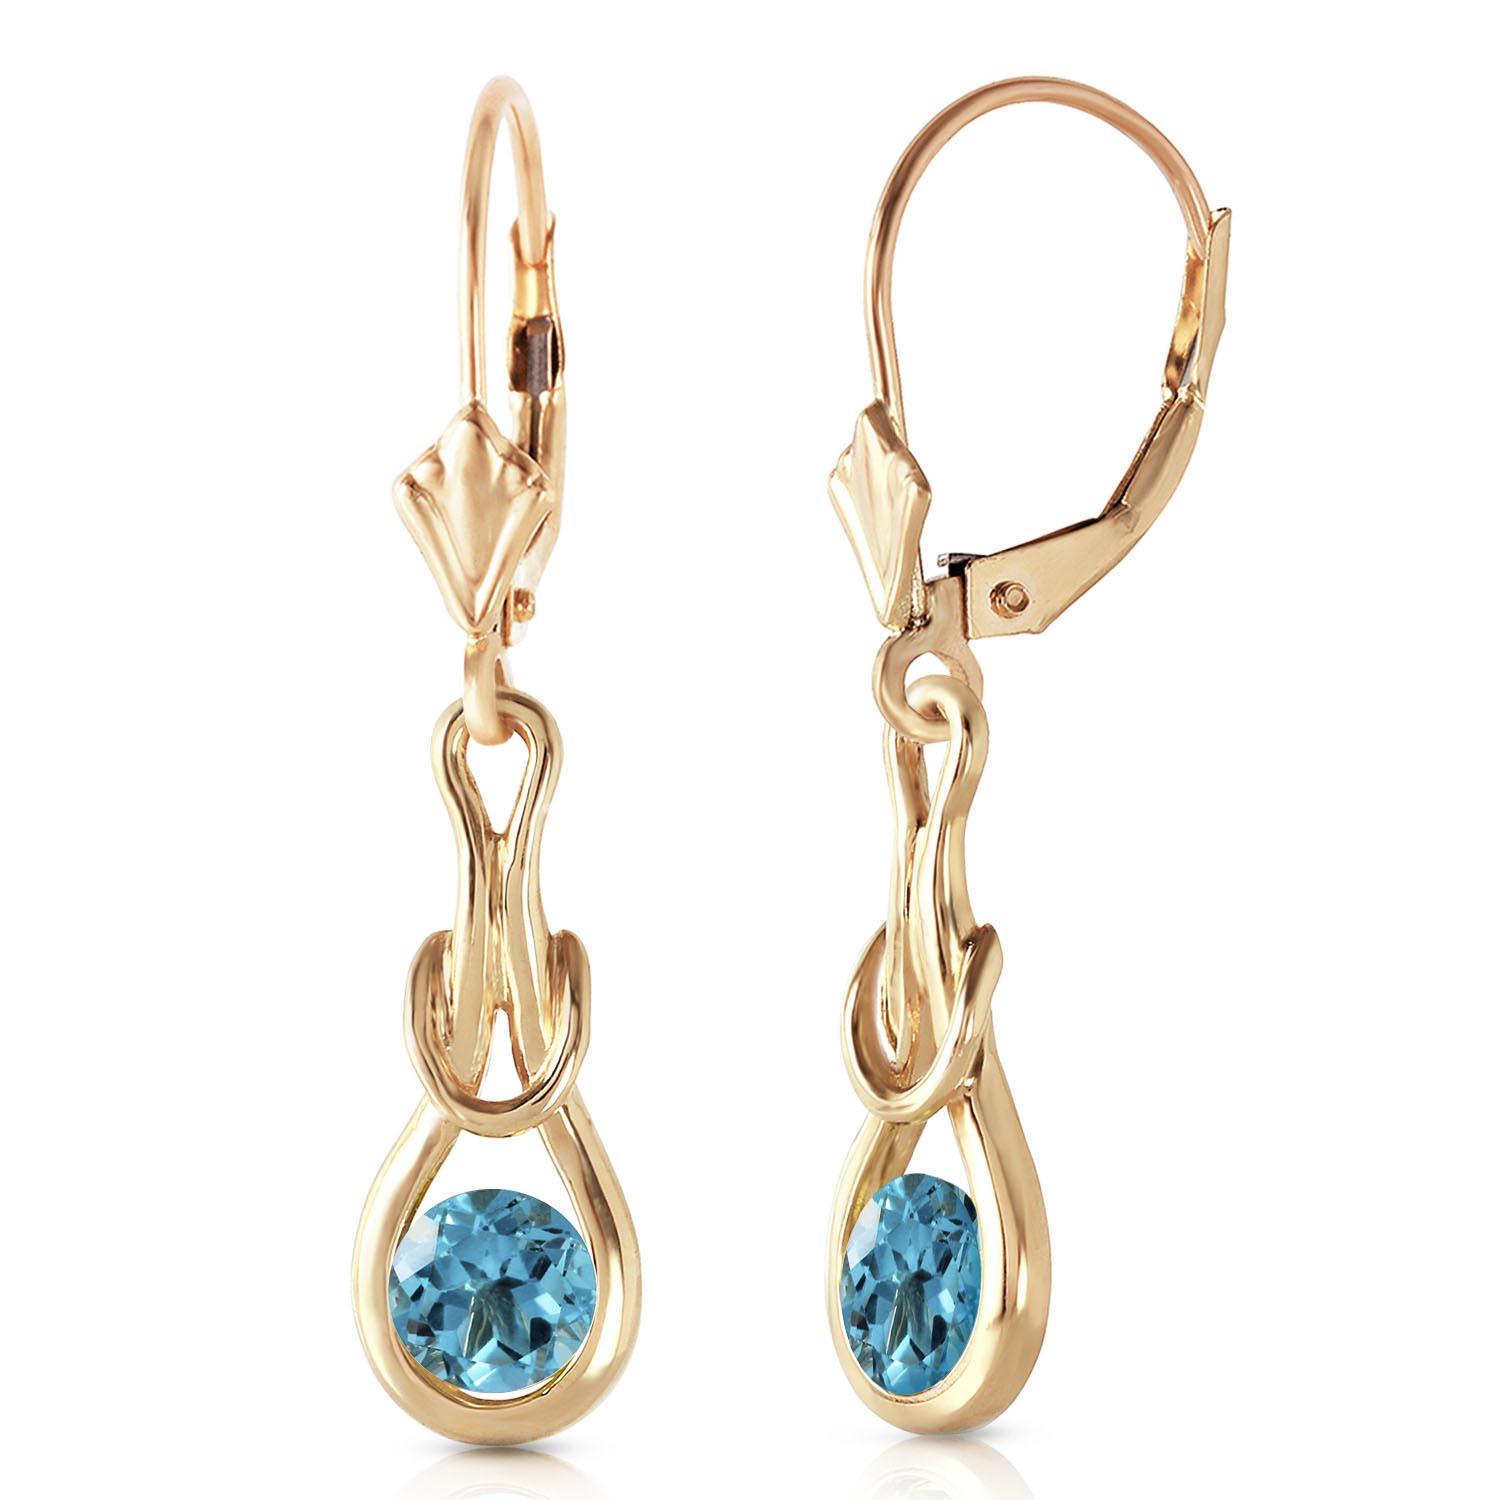 Blue Topaz San Francisco Drop Earrings 1.3 ctw in 9ct Gold